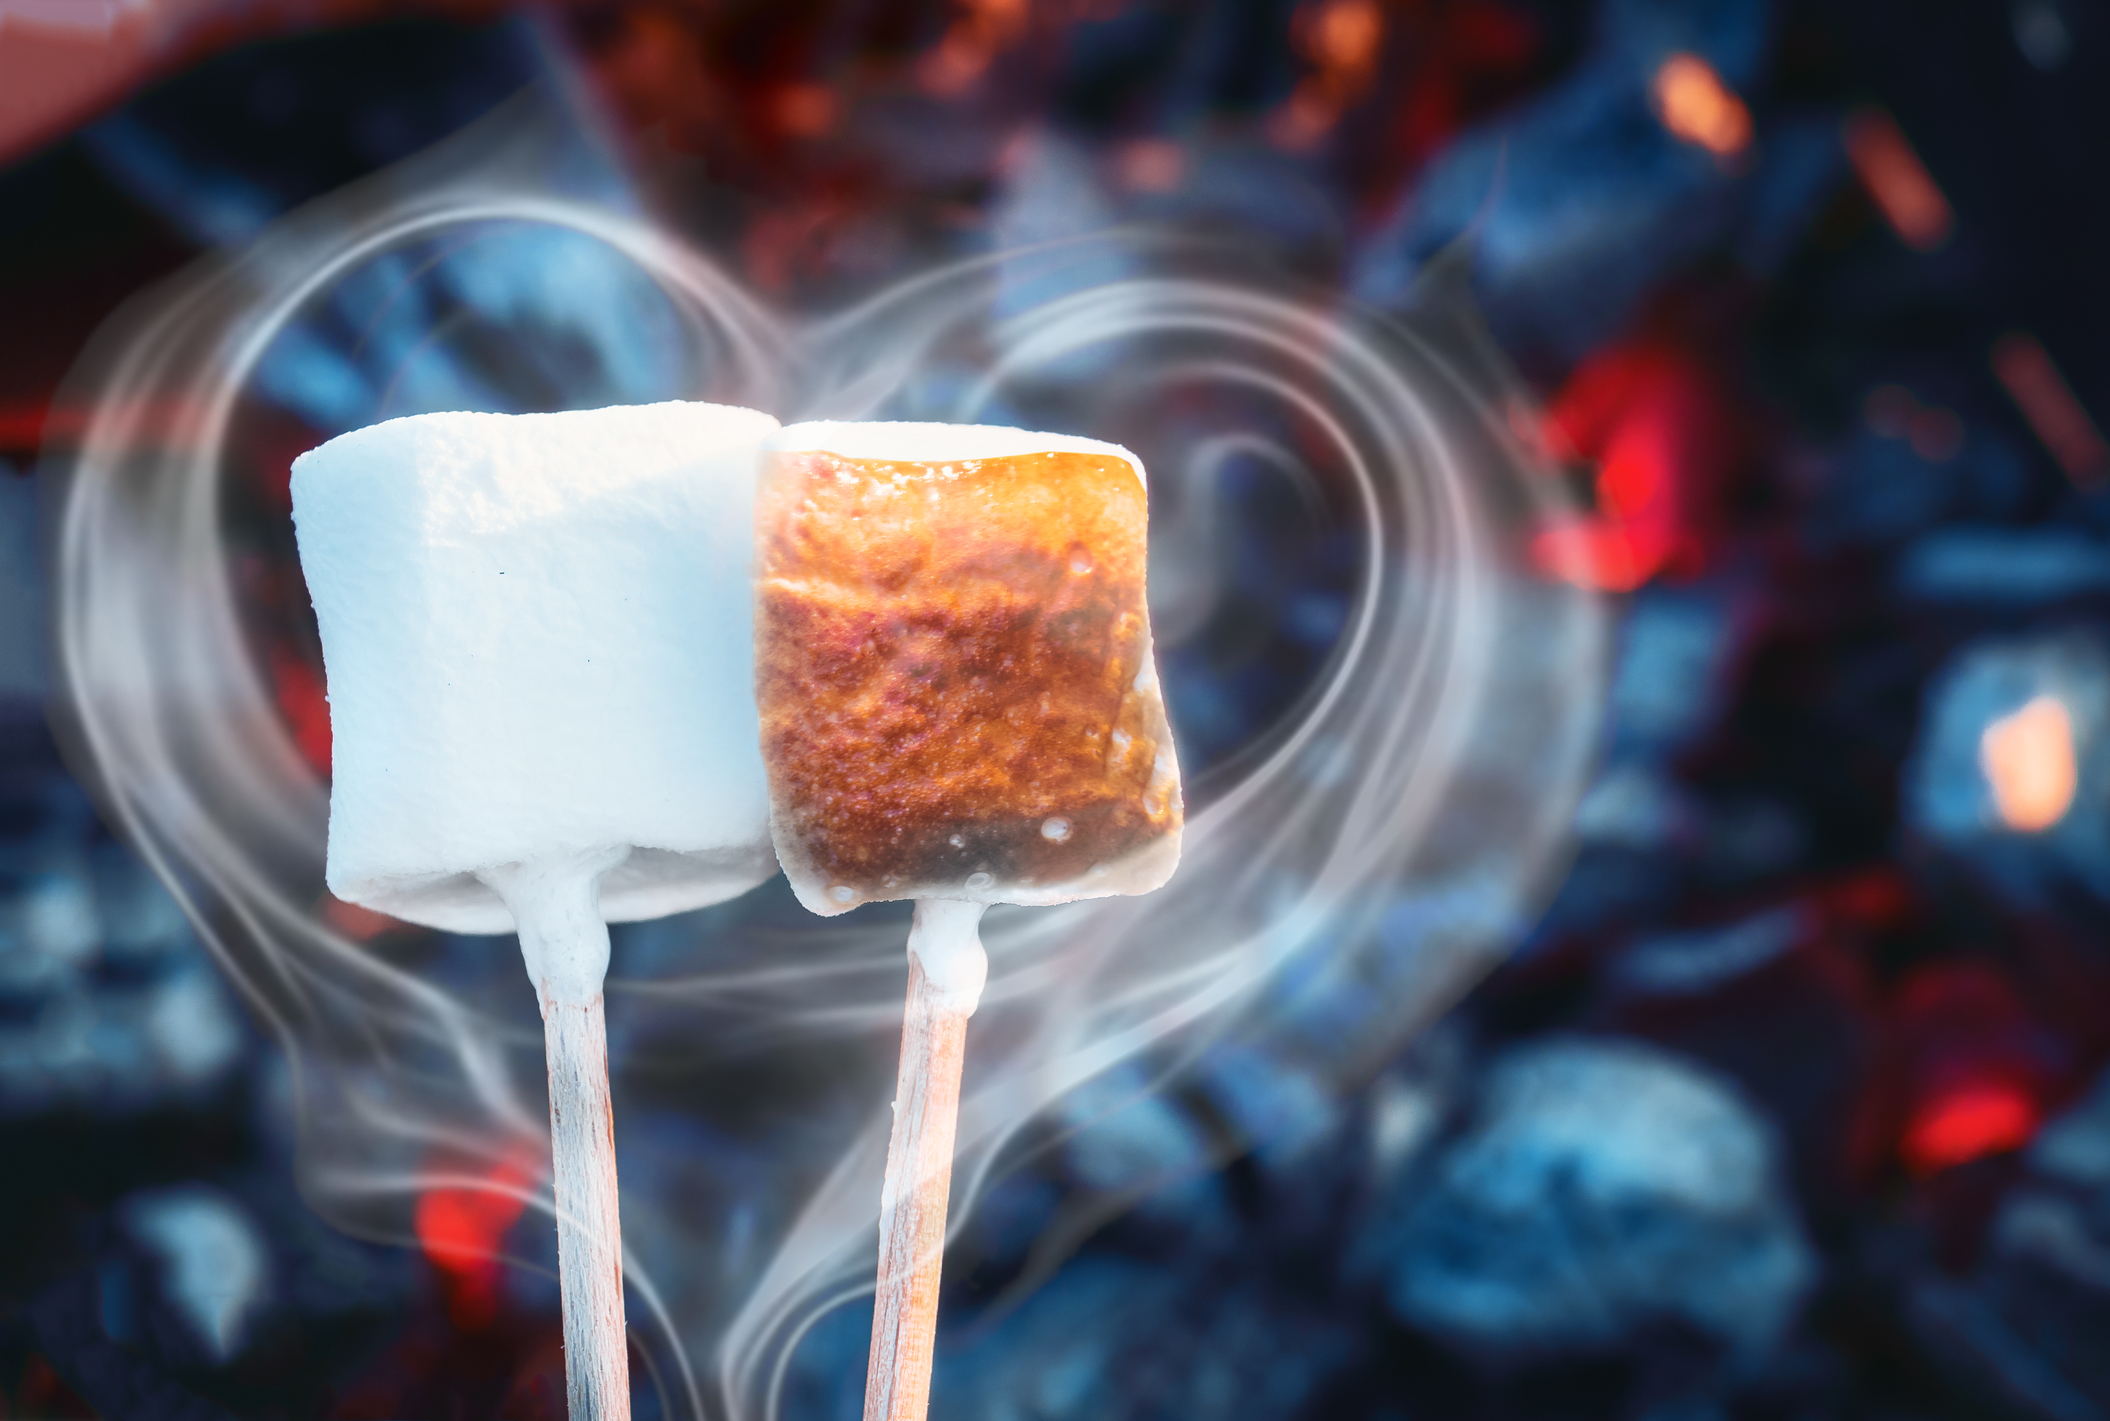 Toasting marshmallows on a garden fire pit